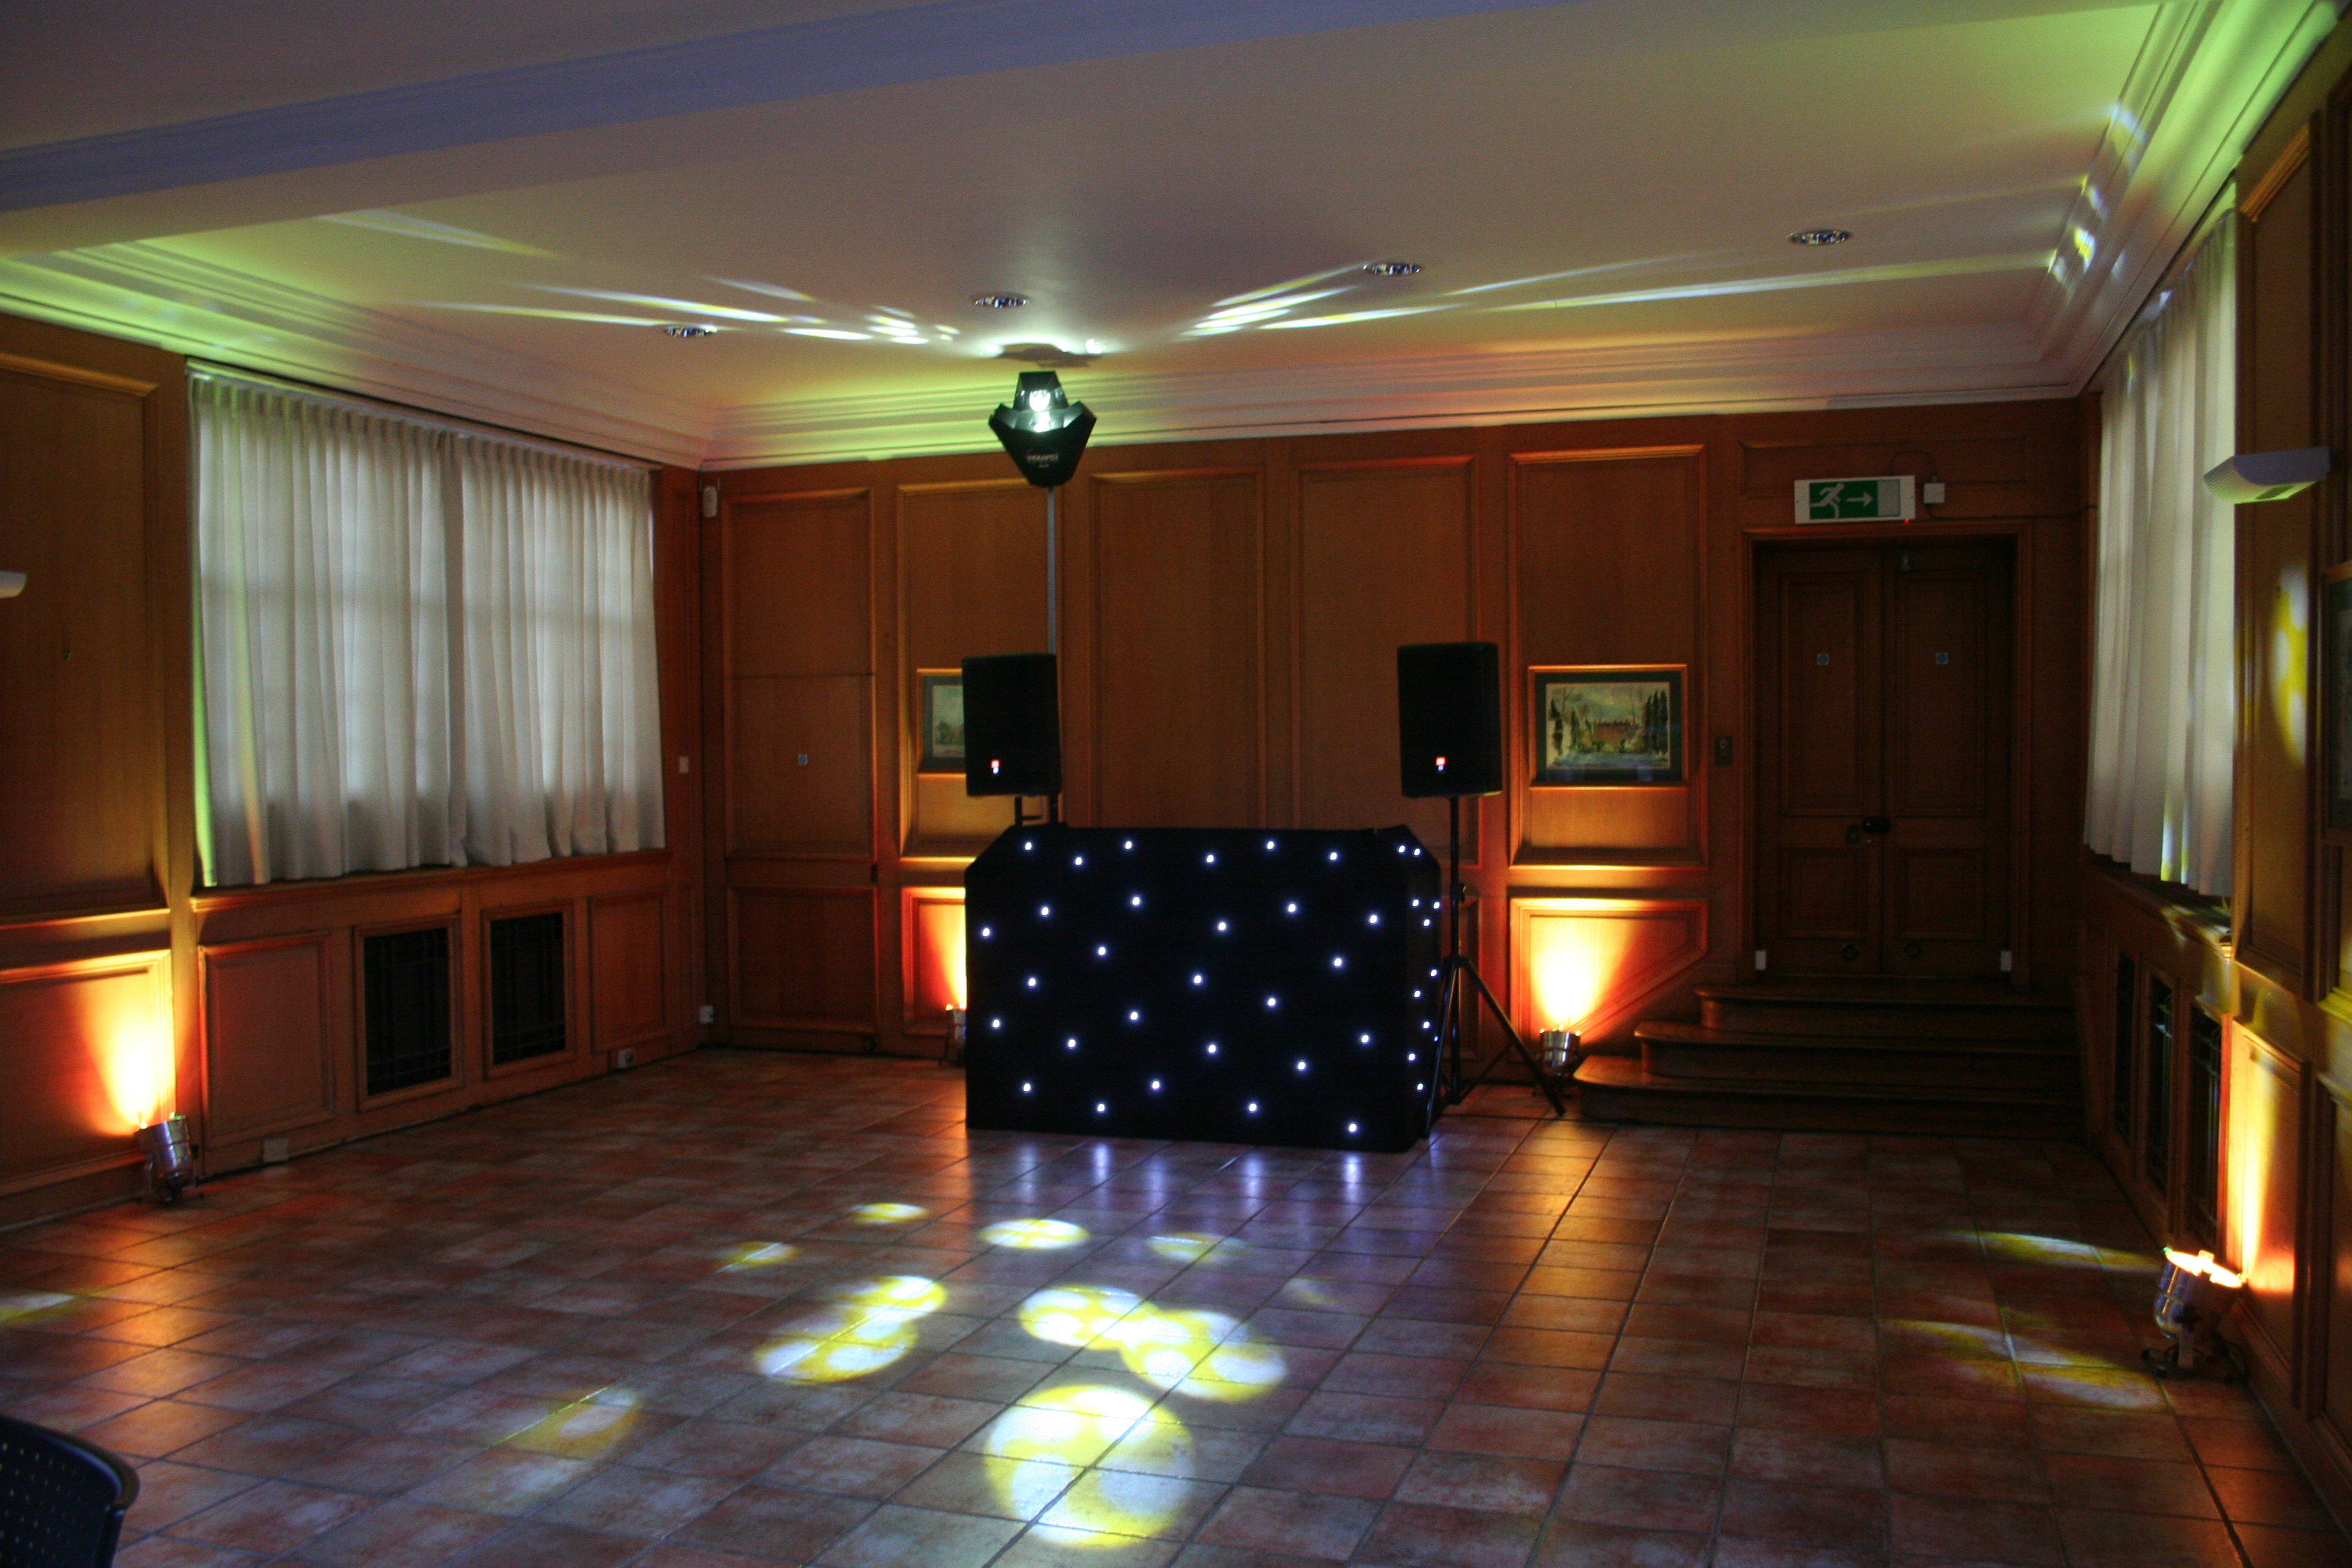 Mobile Disco for wedding